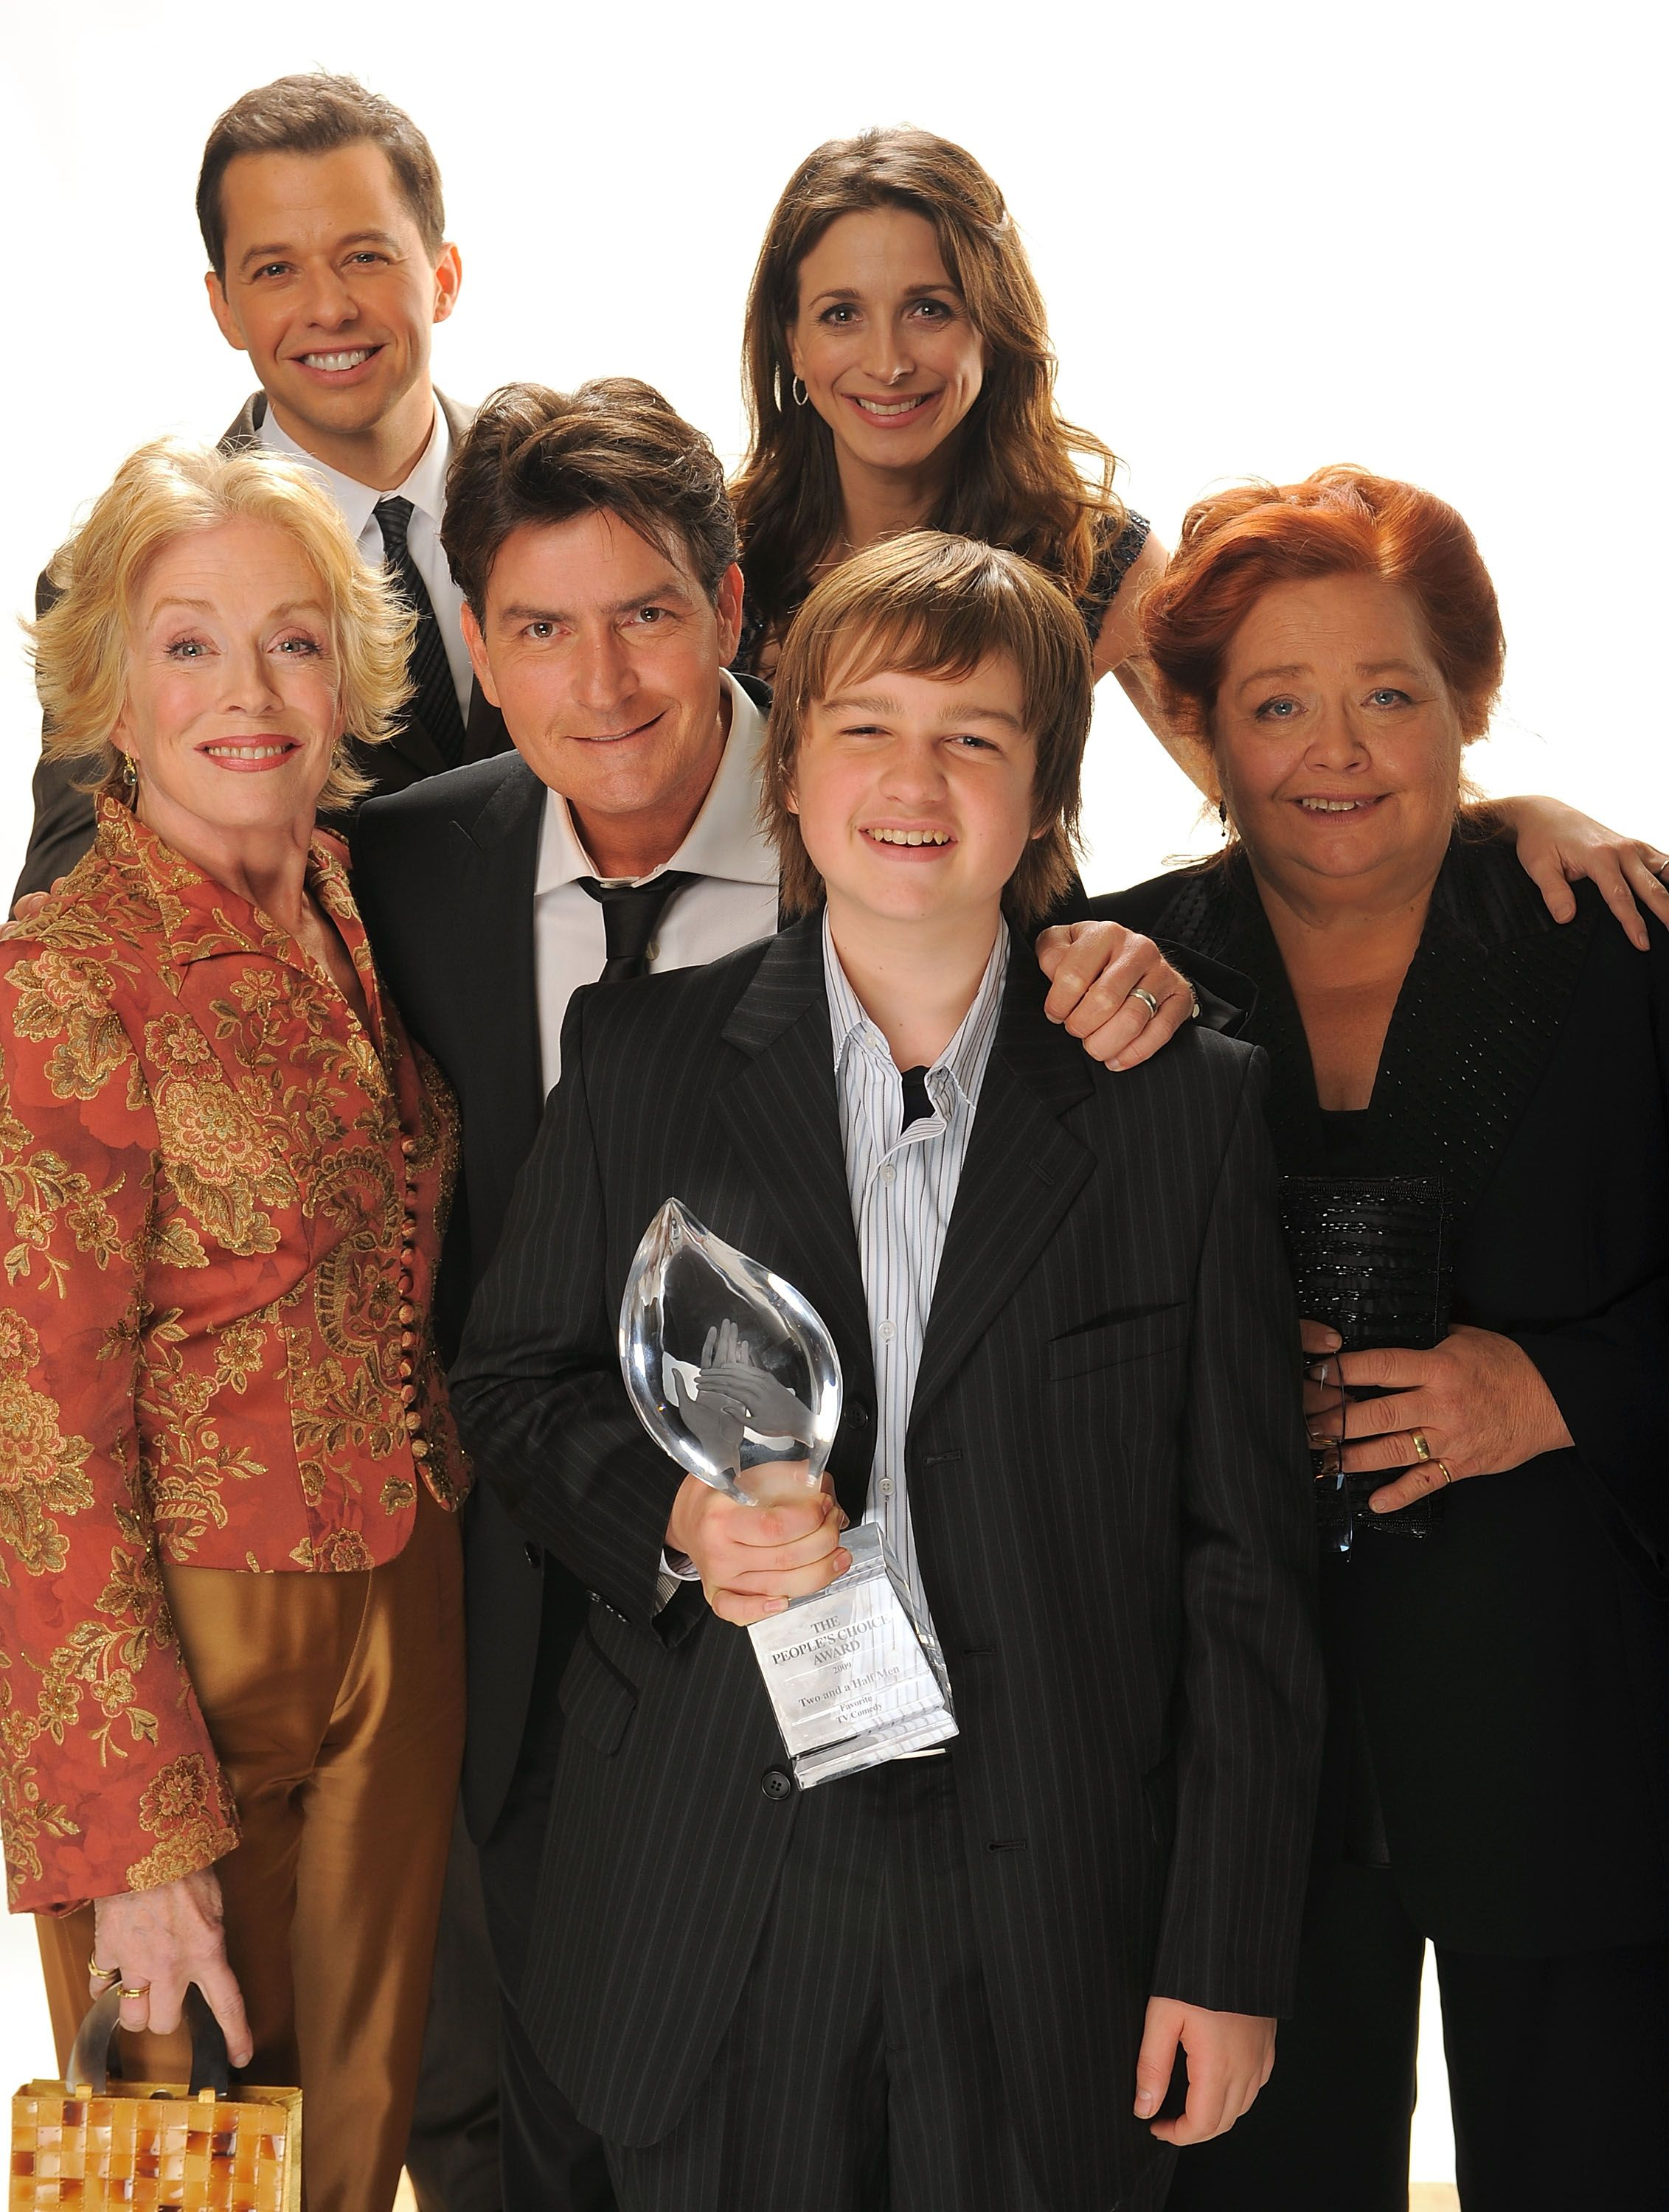 Conchata Ferrell From Two And A Half Men Died At 77 What Happened To Other Cast Members